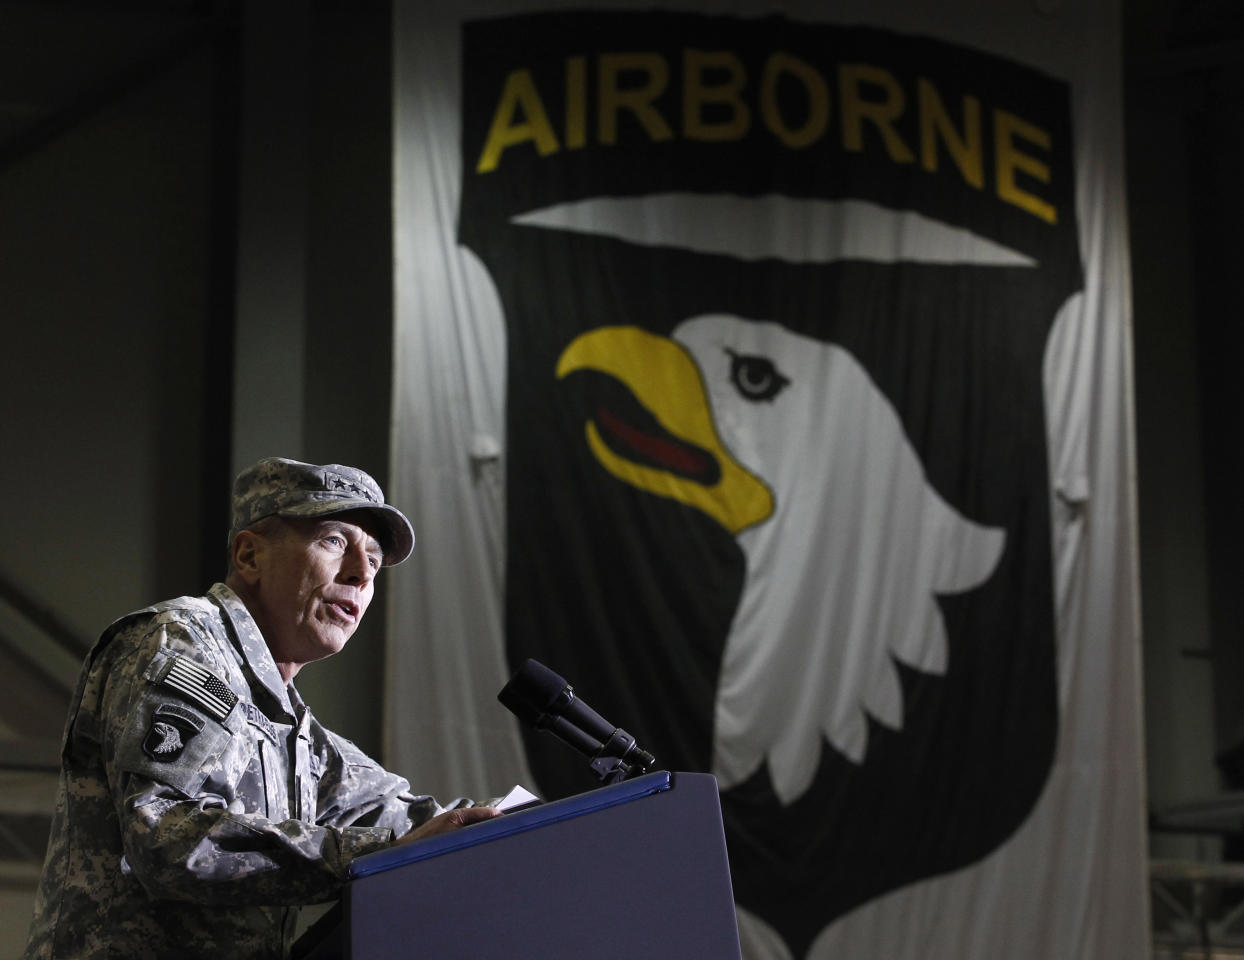 General David Petraeus,  the commander of U.S. forces in Afghanistan, addresses troops at Bagram Air Base December 3, 2010.  REUTERS/Jim Young